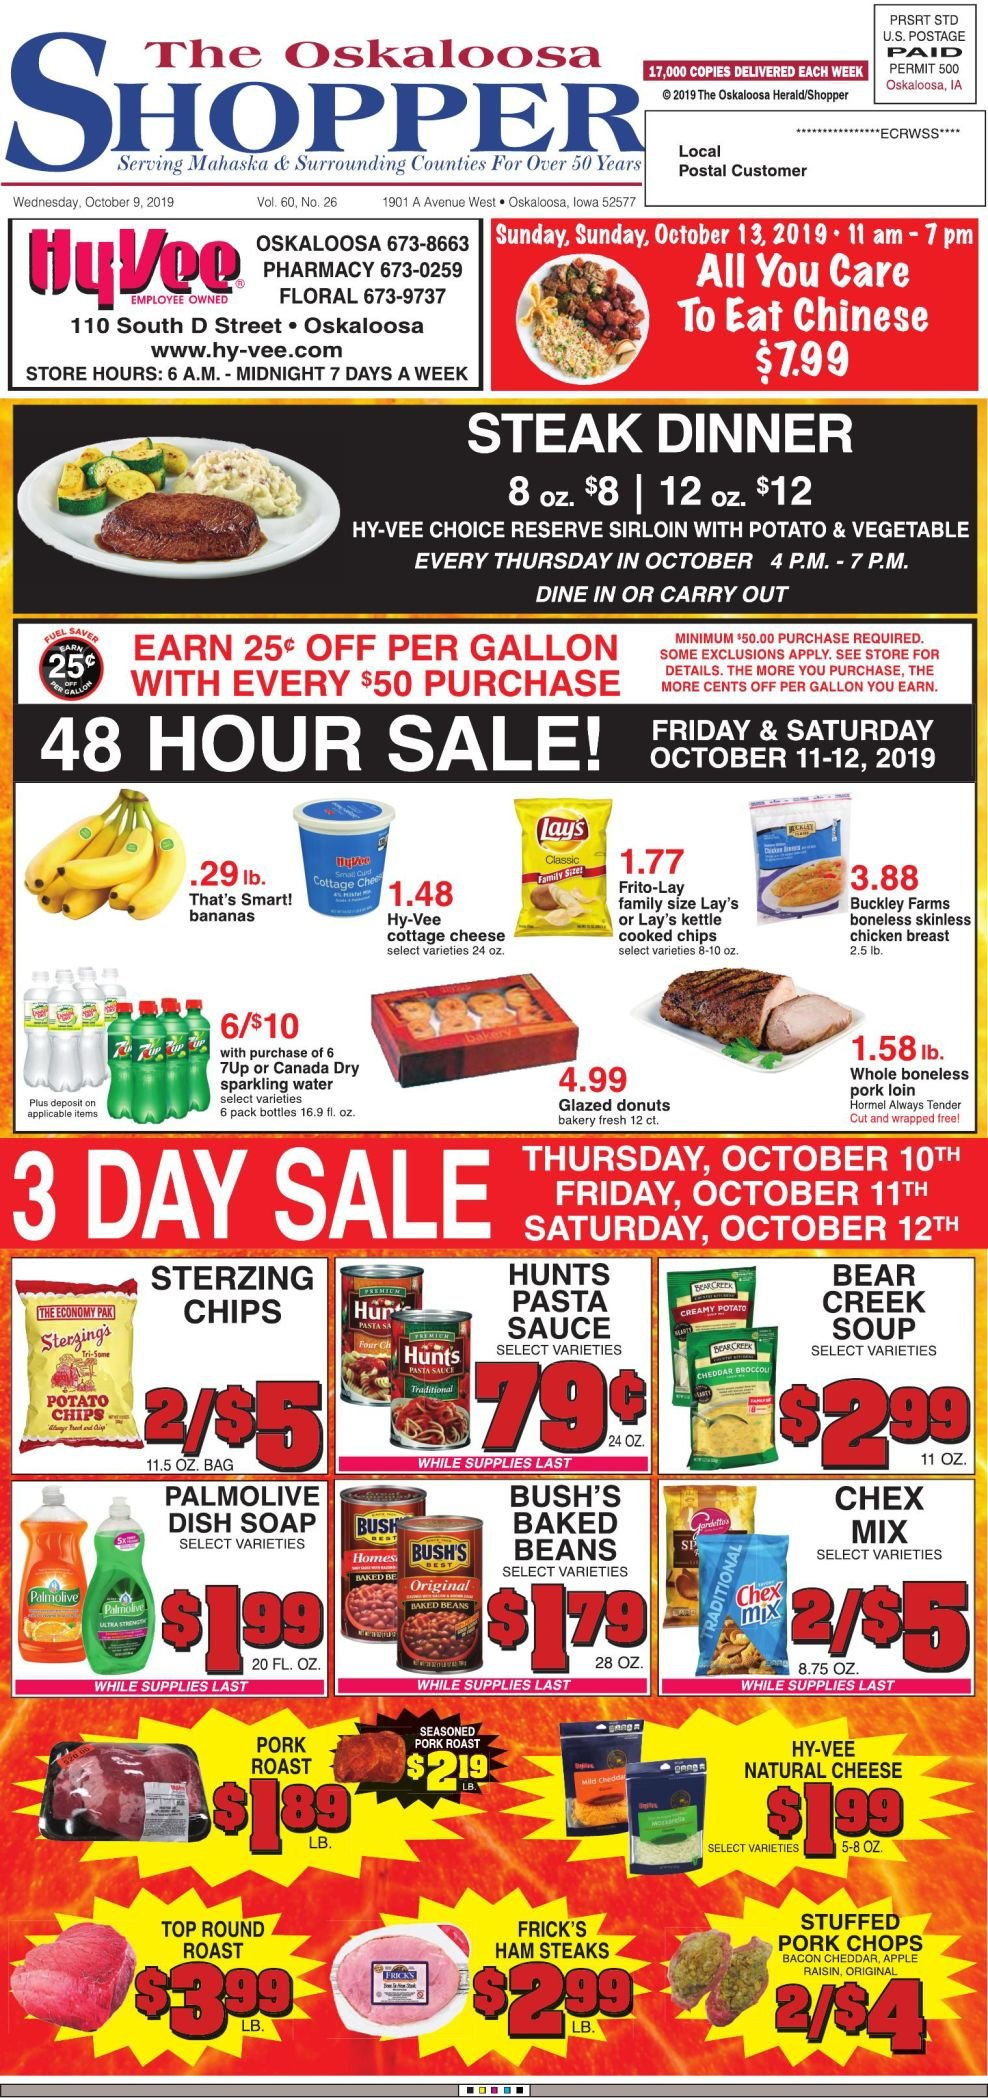 Oskaloosa Shopper week of 10/9/19